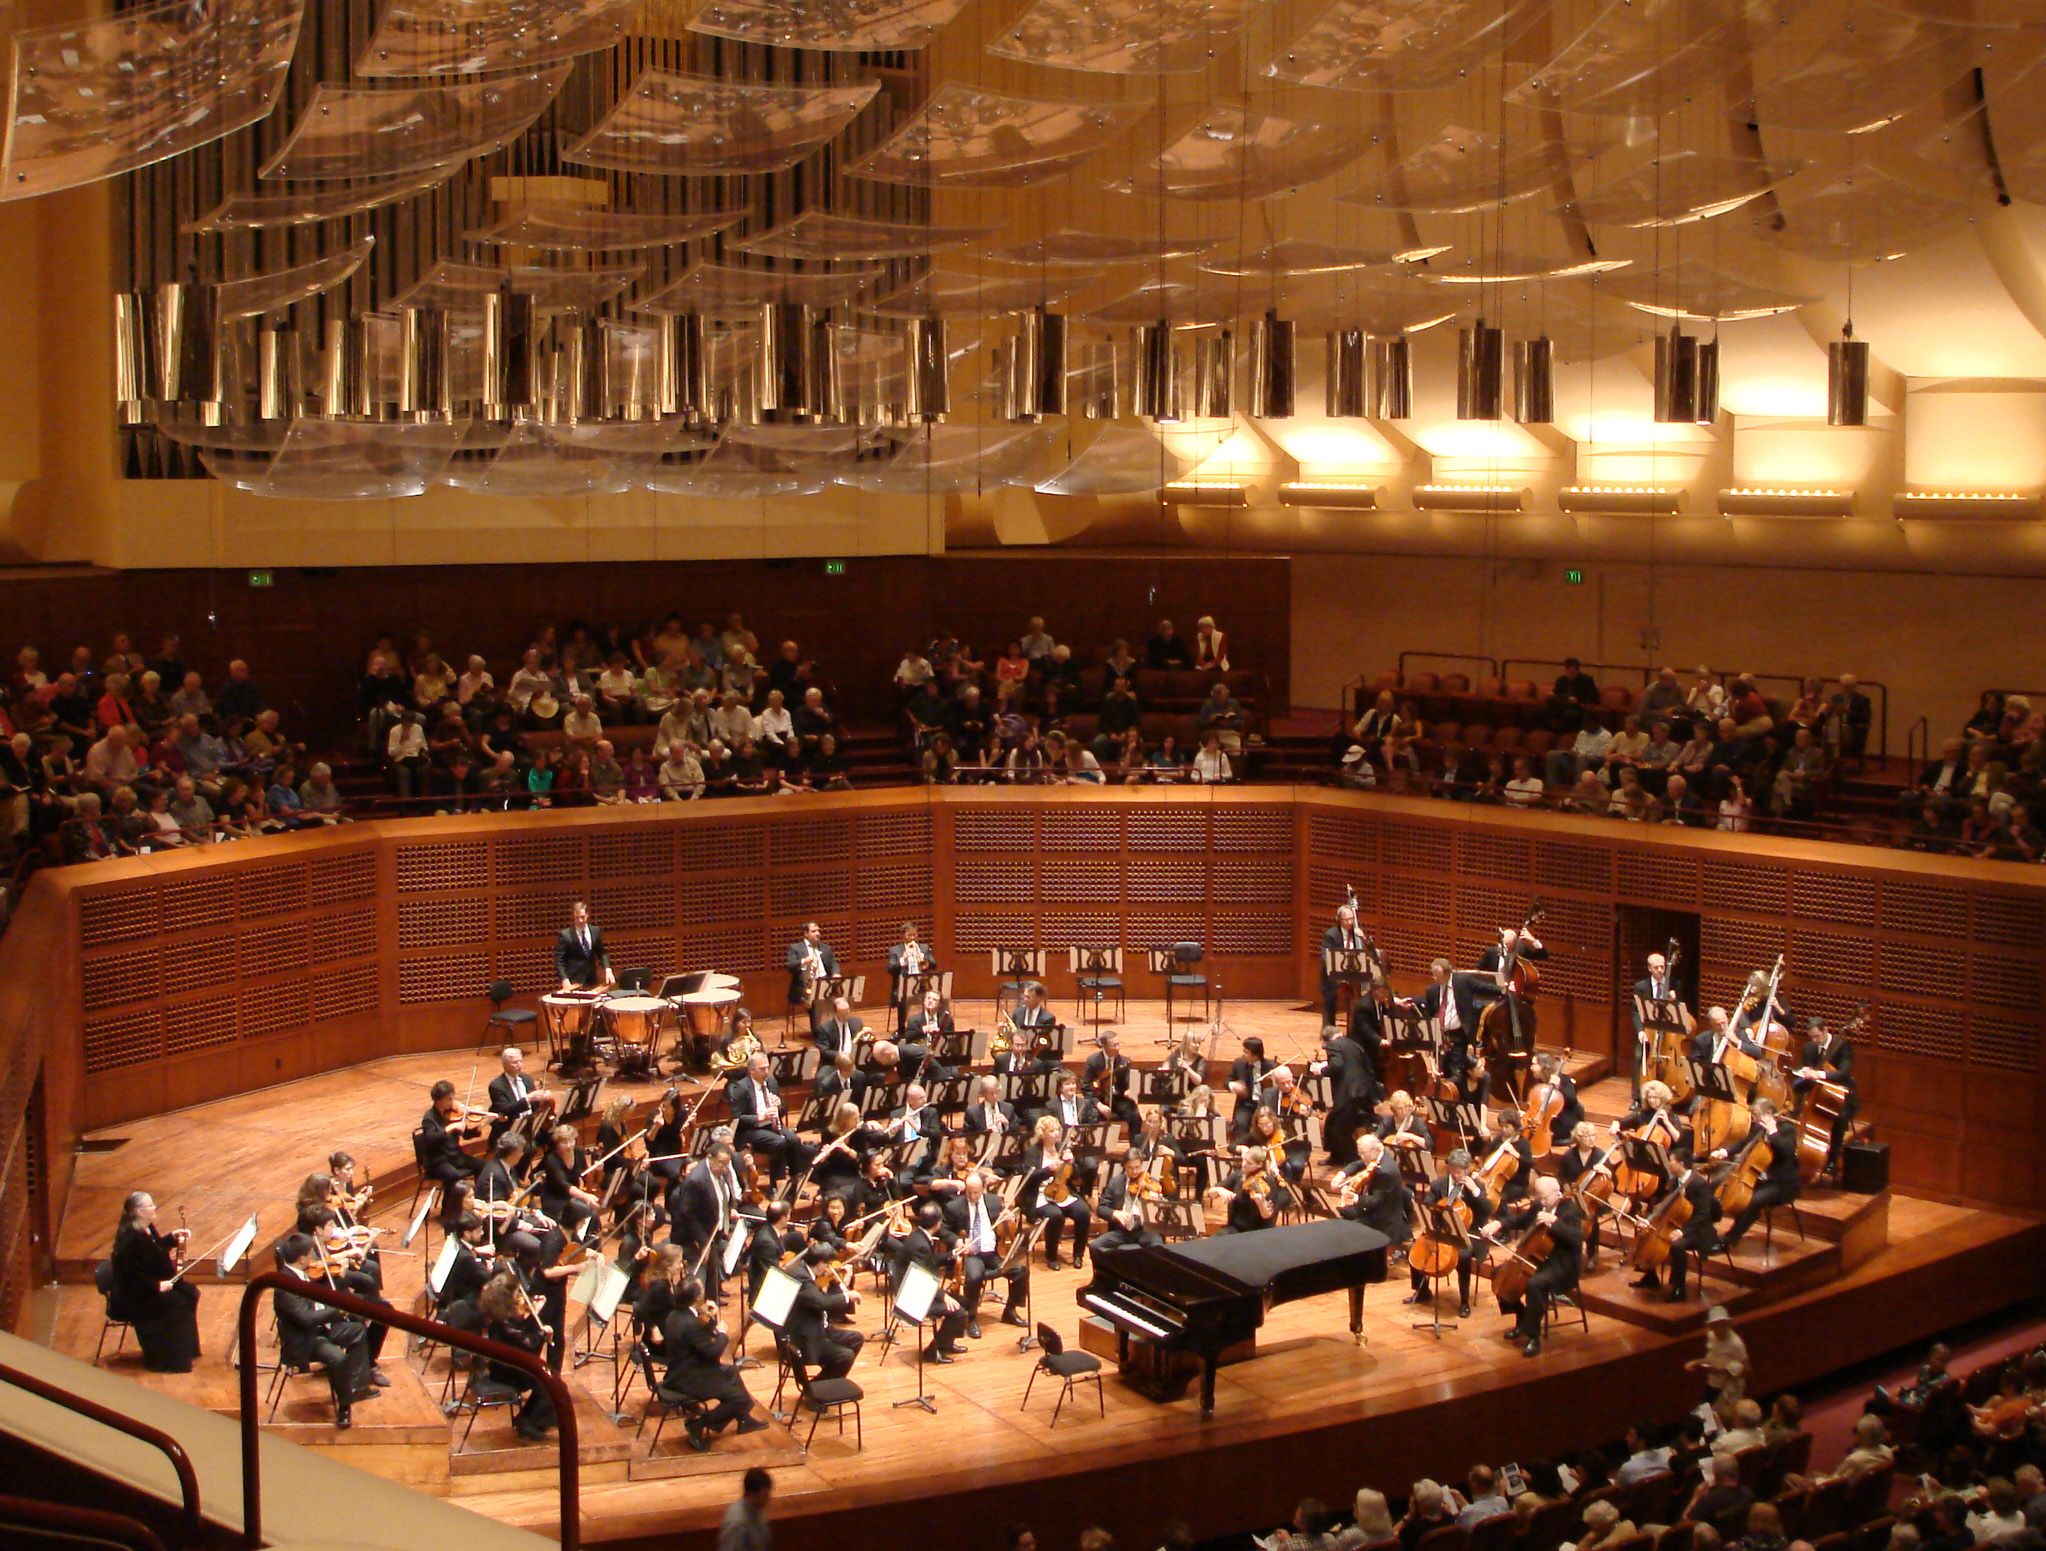 San Francisco Symphony performance during Opening Night Gala Gala at Davies Symphony Hall in San Francisco, Calif. on Wednesday, September 5,